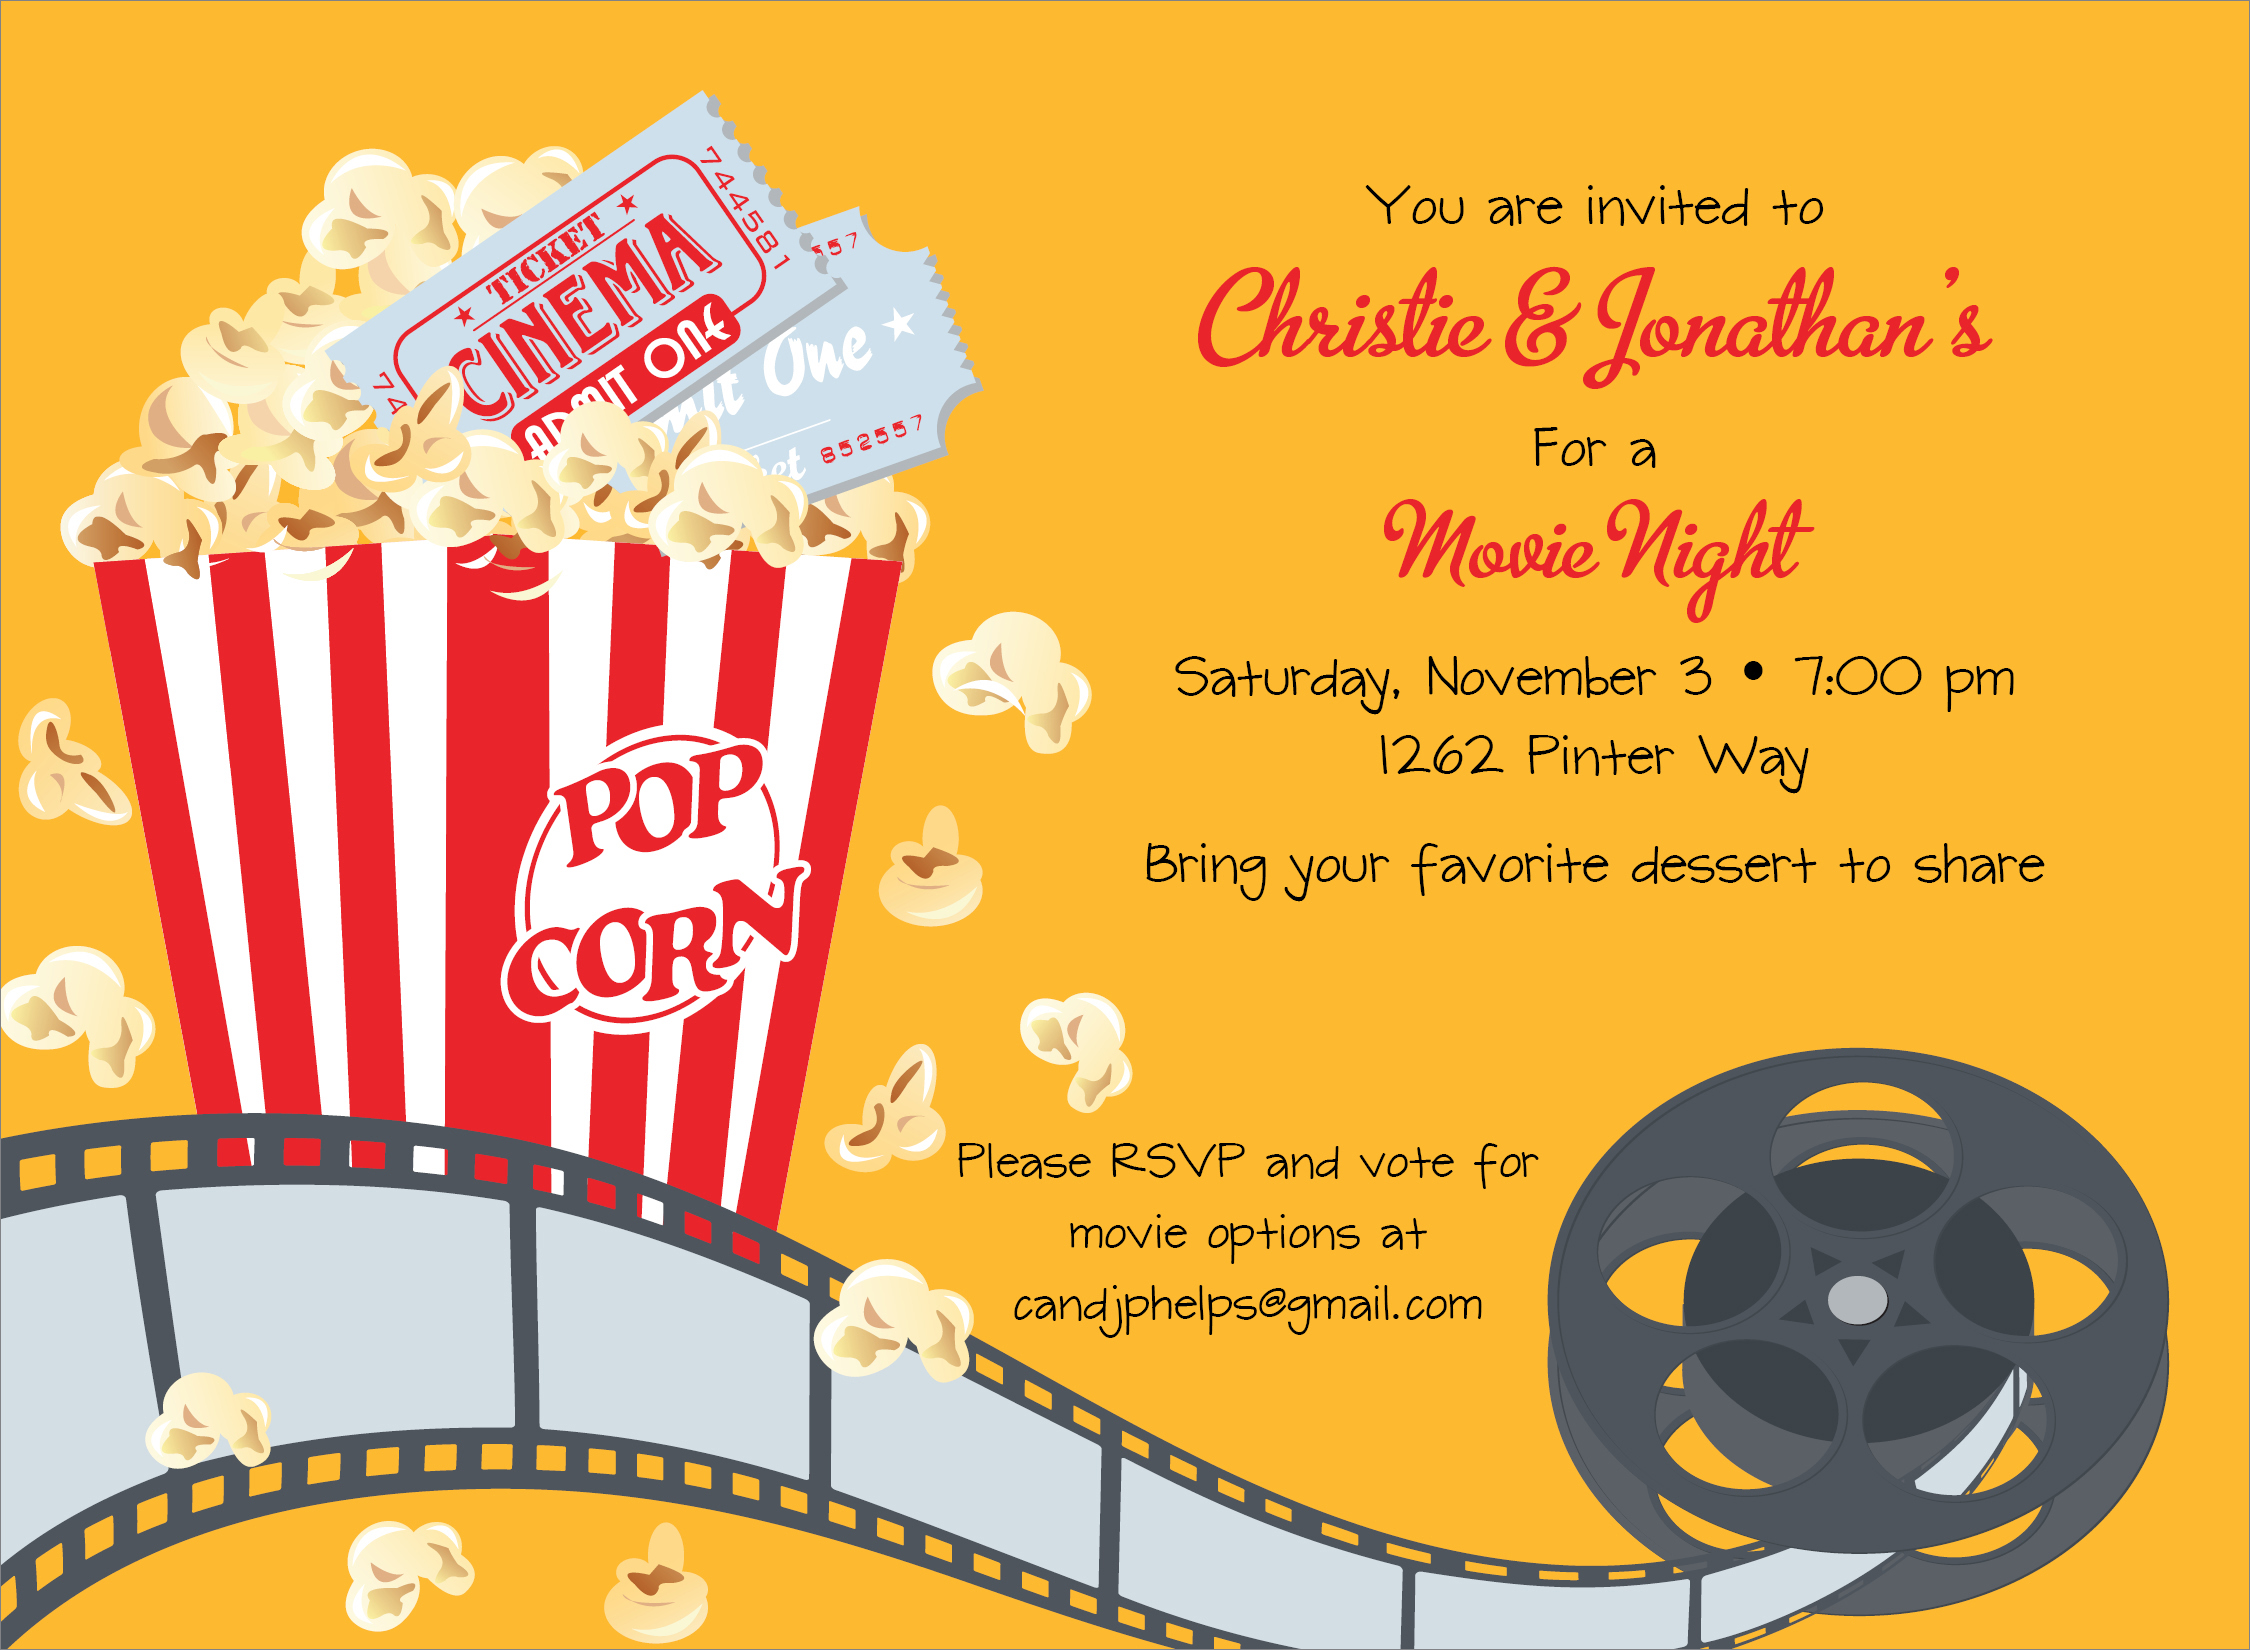 Reel Party Invitations is good invitations example